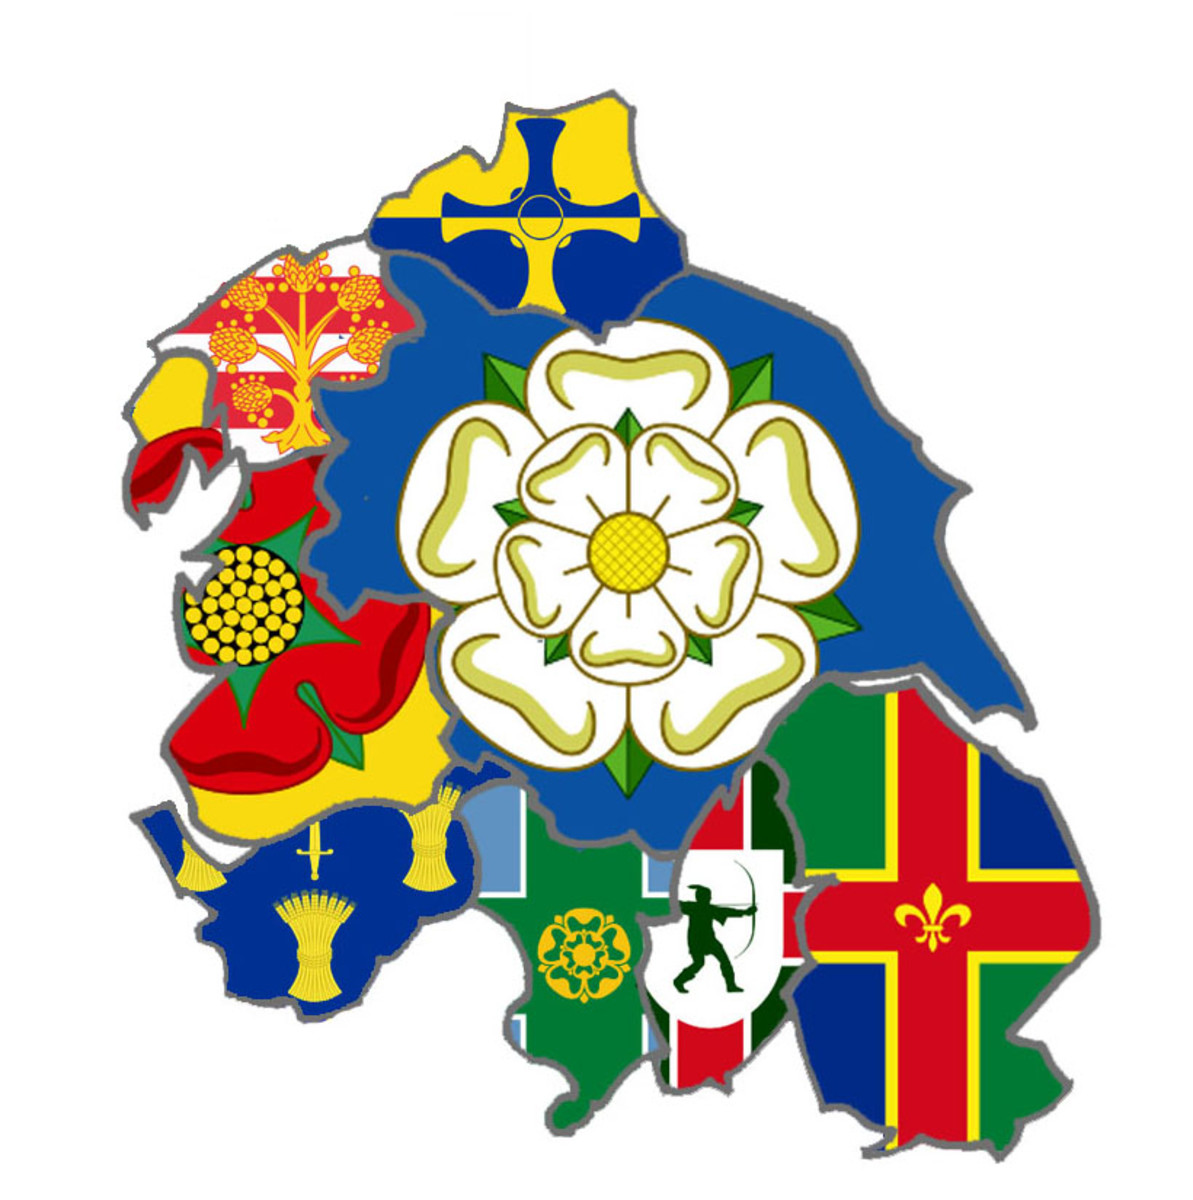 The banners of Yorkshire with the white rose at the heart with the neighbours, pictured are the cross of Durham at the top and Lincoln on the right, Nottinghamshire (Robin Hood), Derbyshire, Cheshire, Lancashire and Cumbria